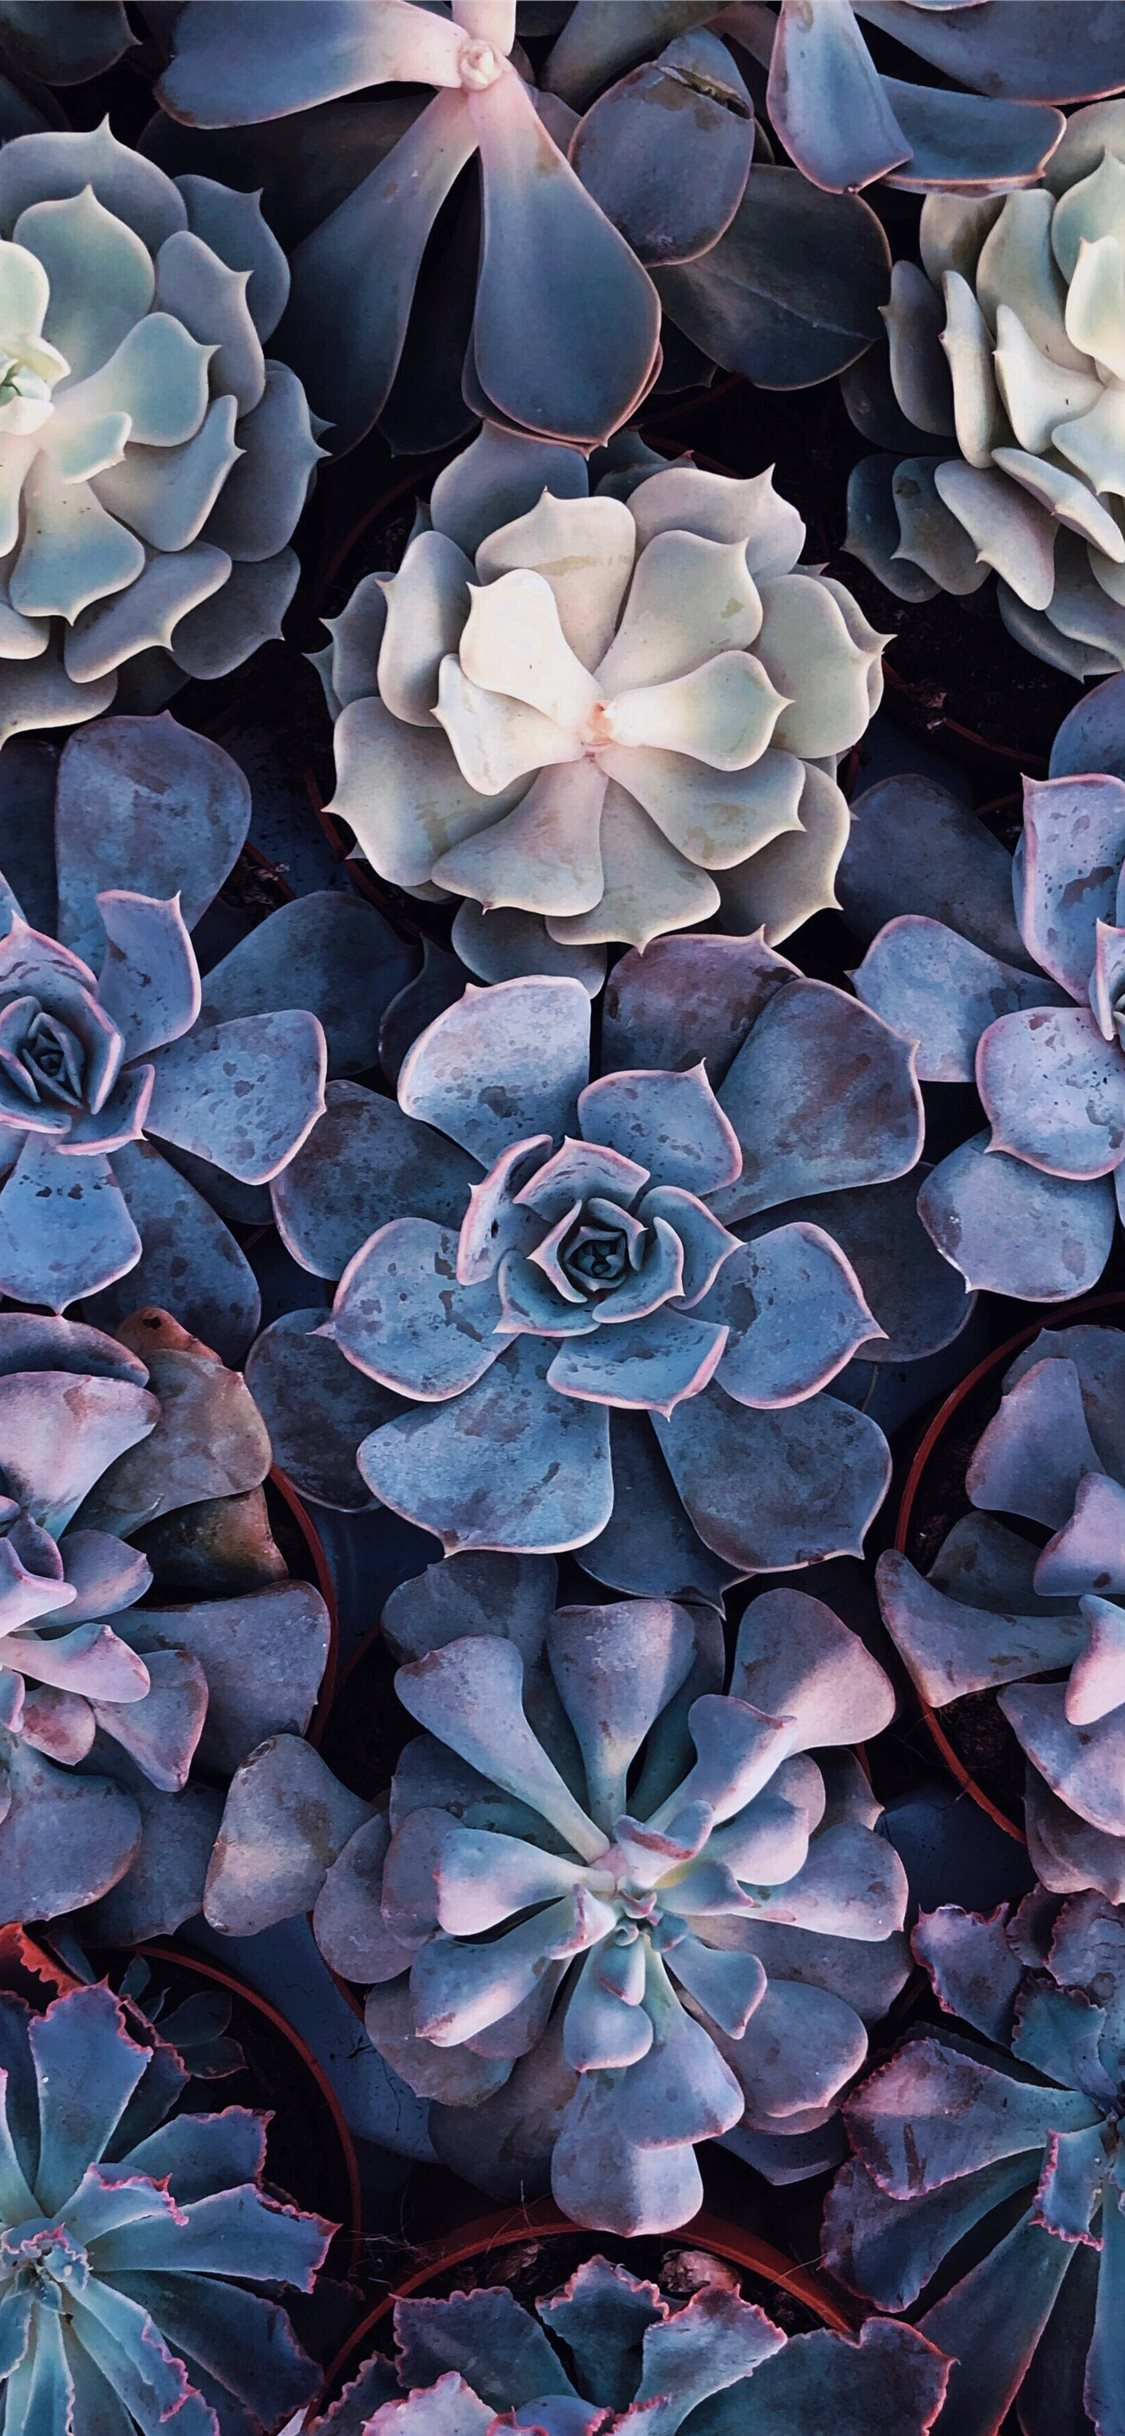 Iphone 11 Succulent Background 1125x2436 Wallpaper Teahub Io